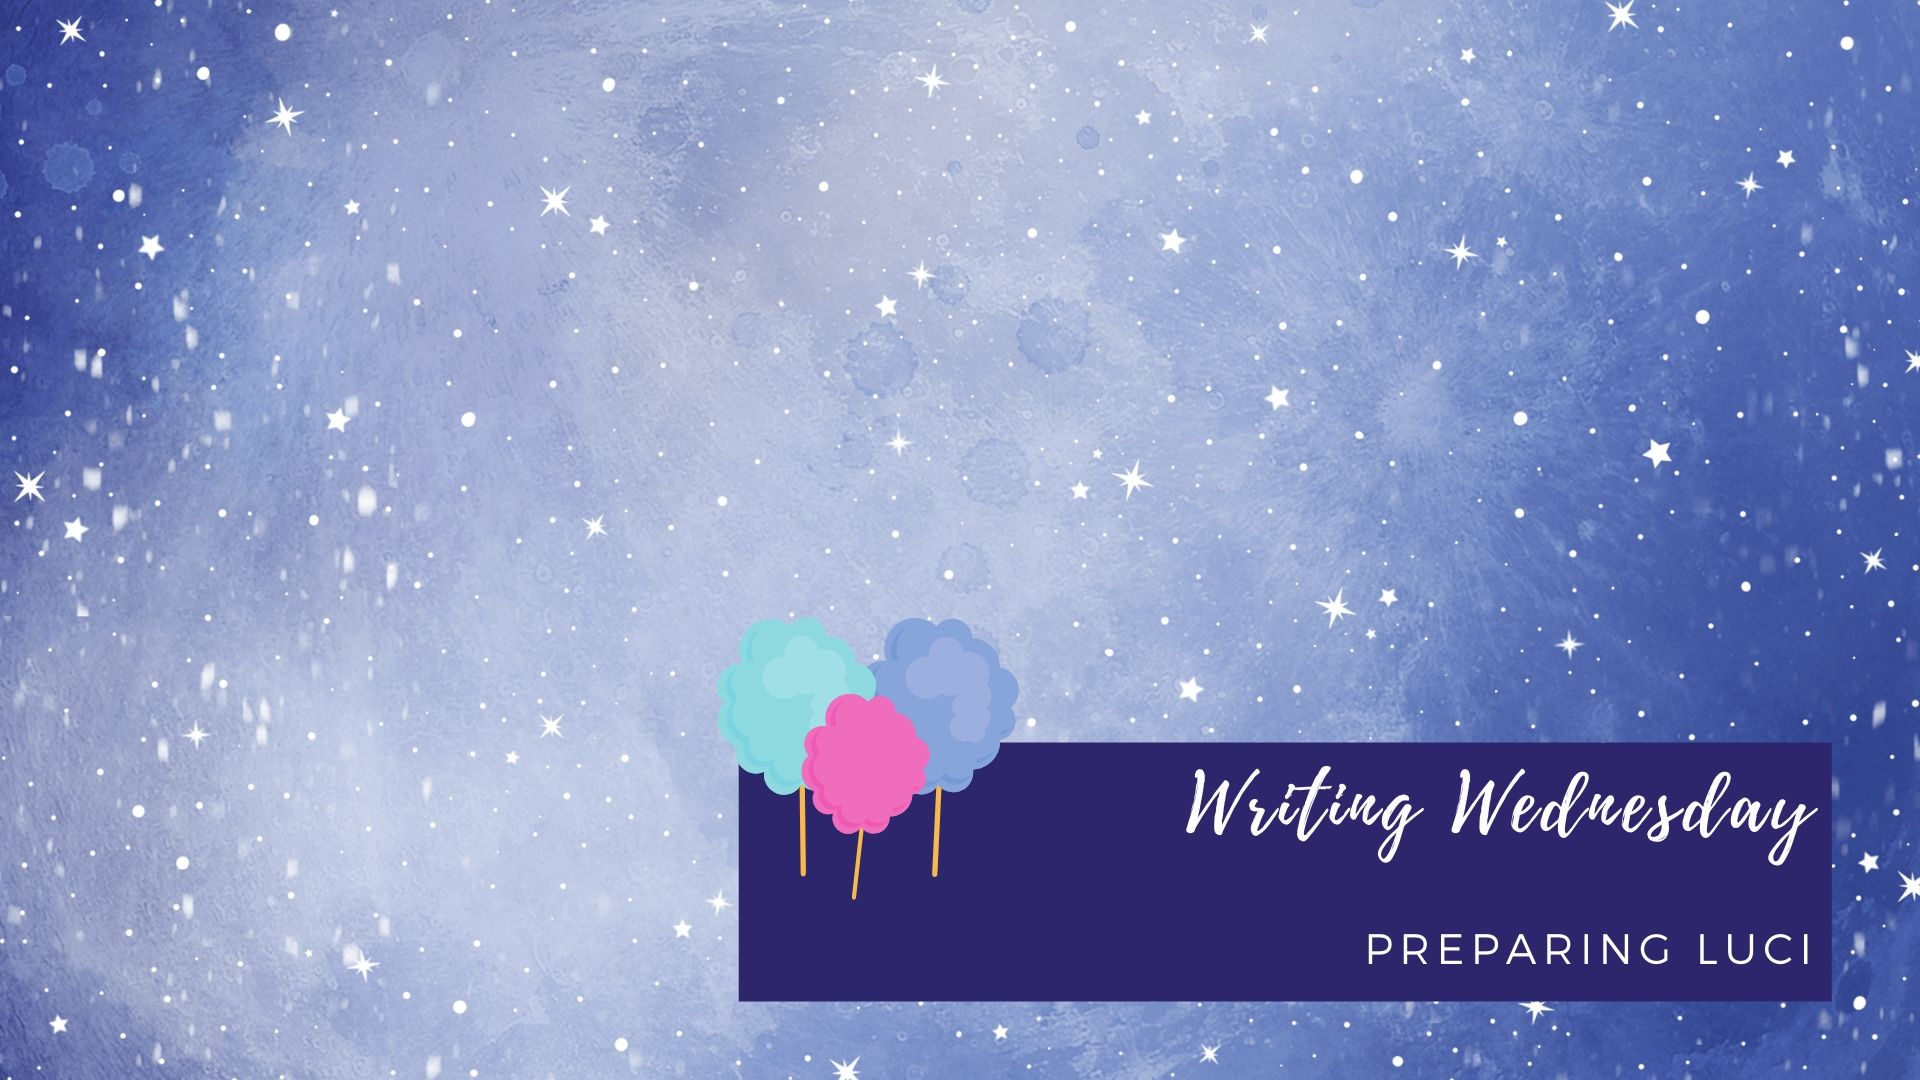 Writing Wednesday: Preparing Luci